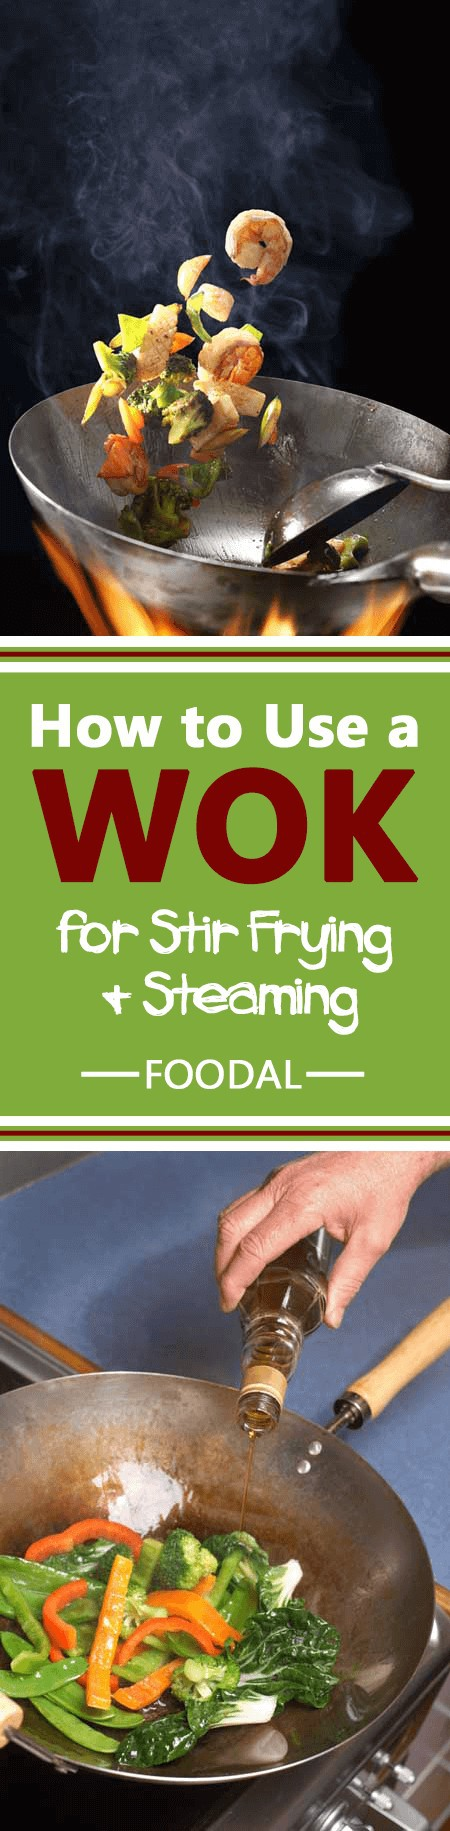 Interested in learning the basics of cooking with a wok? If so, check out this guide. We go through selection and seasoning of your wok as well as stir frying, steaming, and deep frying techniques and give you a ton of pointers to get you started off on the right foot. Read more now. https://foodal.com/kitchen/pots-pots-skillets-guides-reviews/guides/how-to-use-a-wok-for-stir-frying-and-steaming/